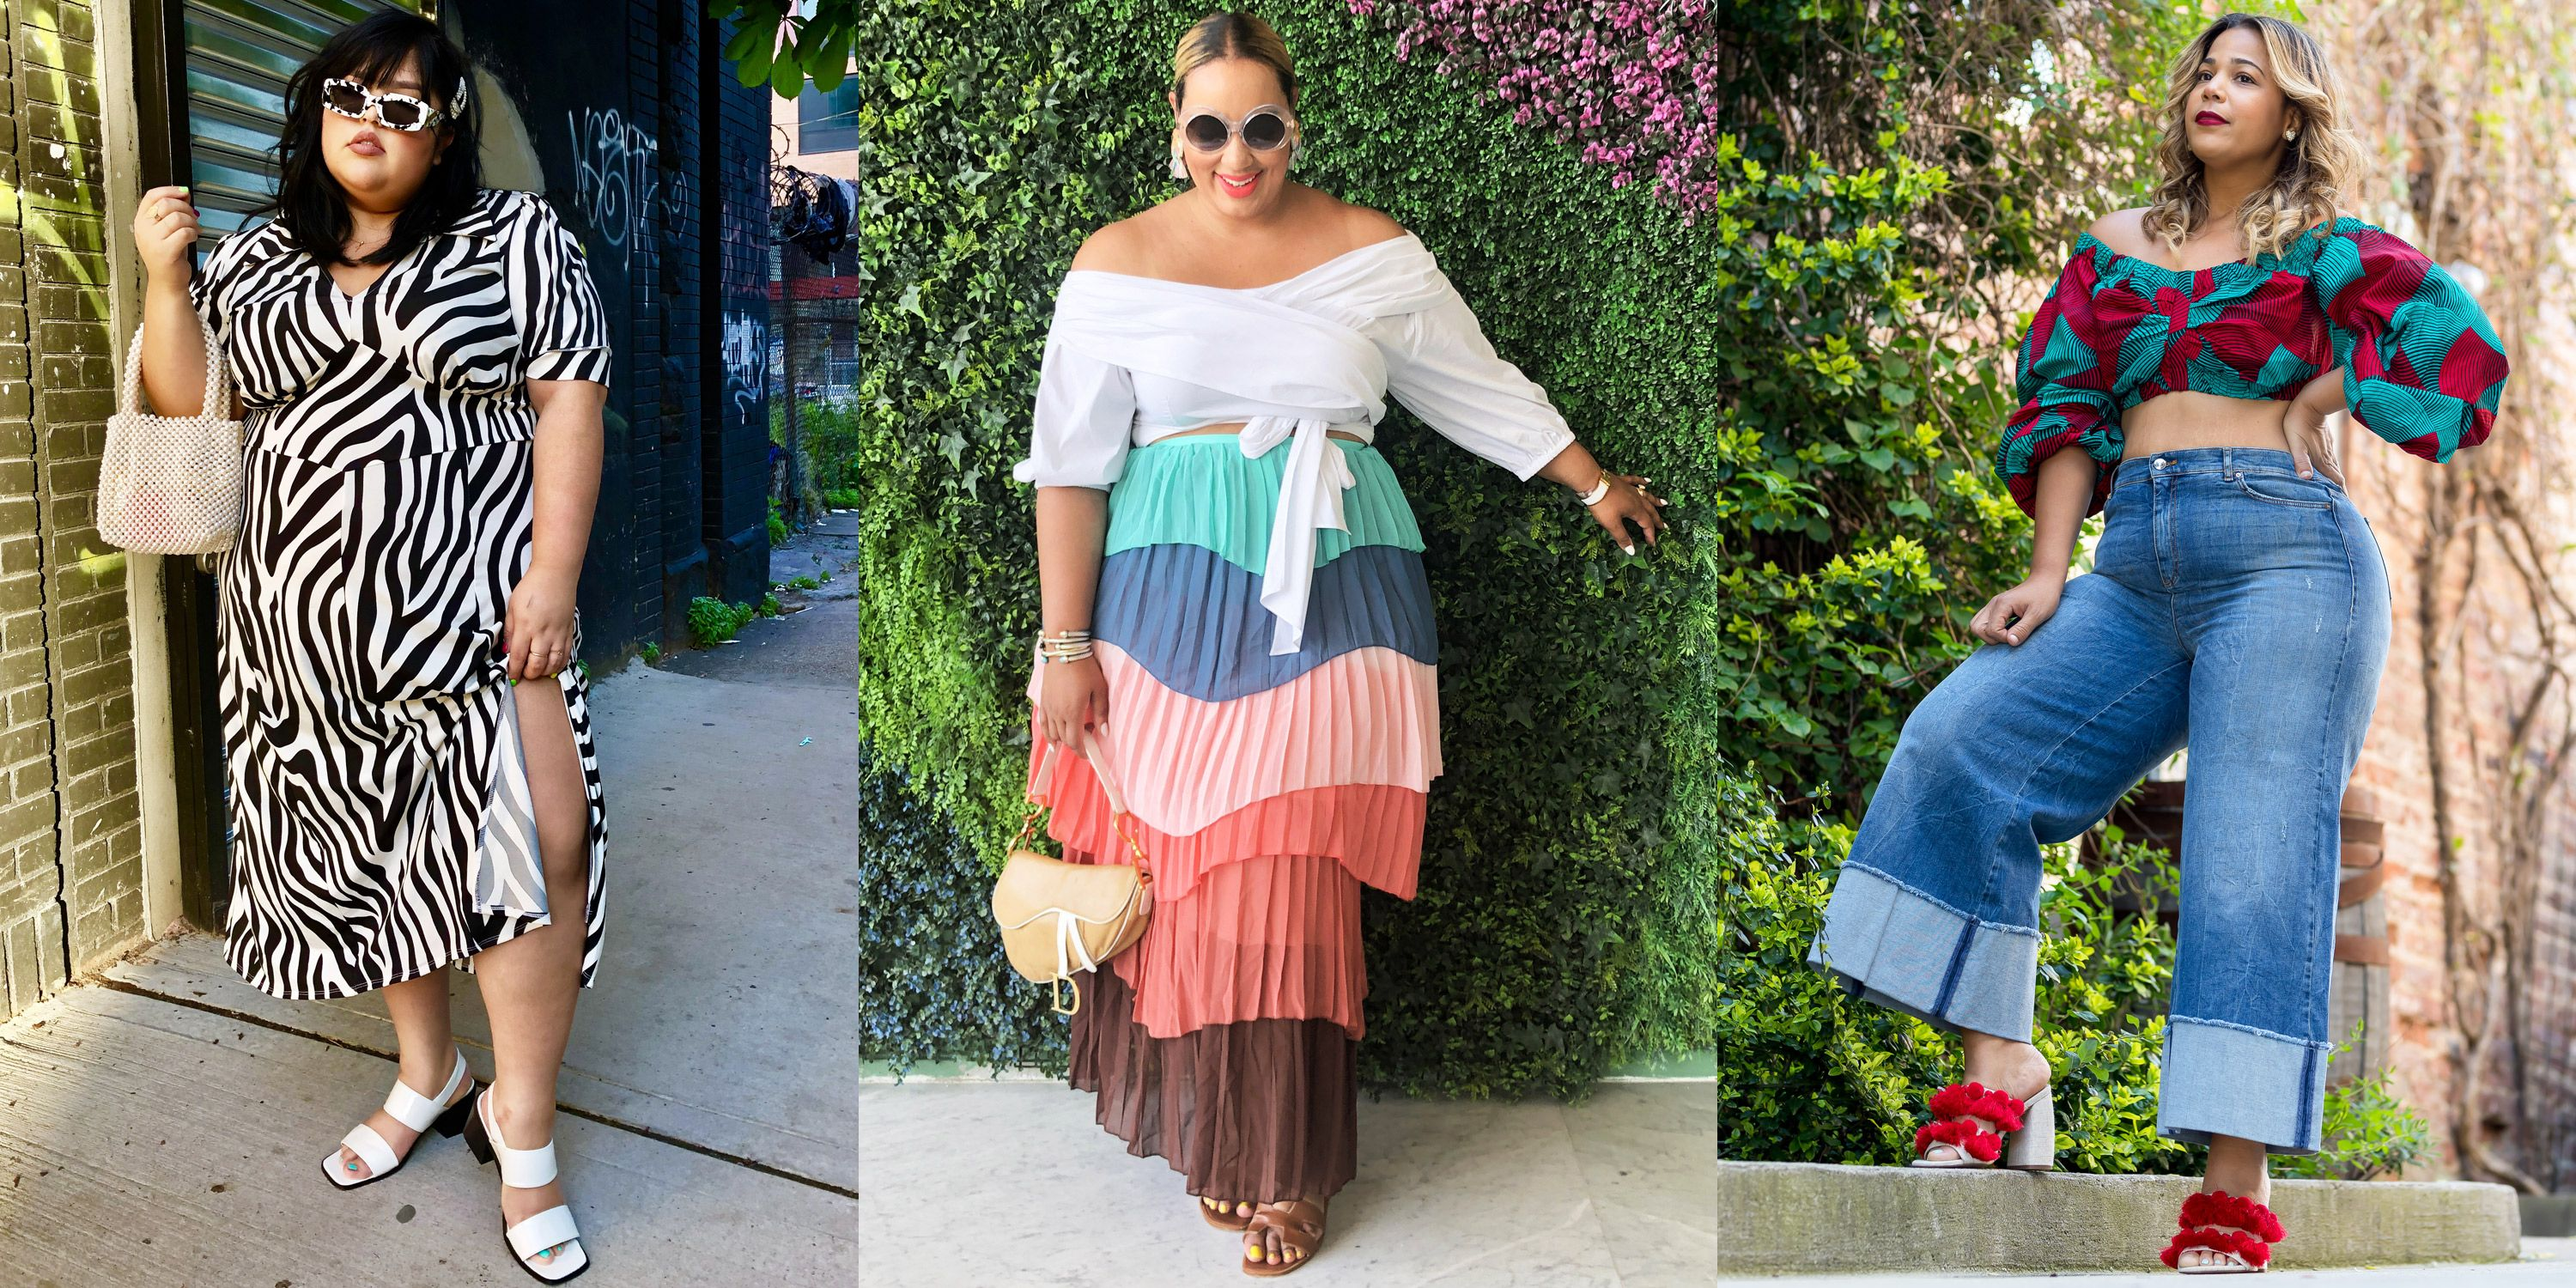 7 Summer Outfit Ideas That Will Highlight Your Curves